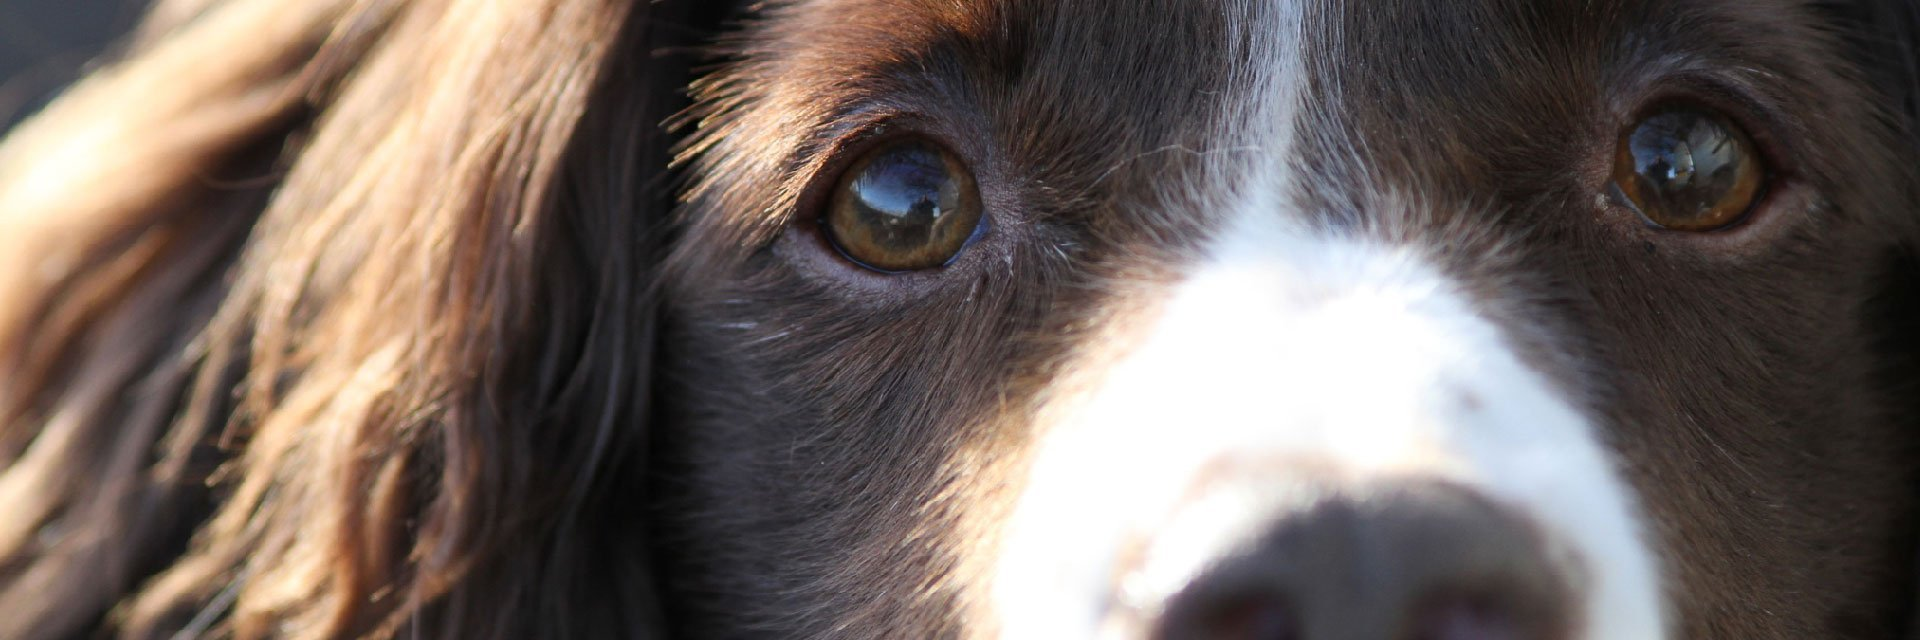 closer view of the dog's eyes